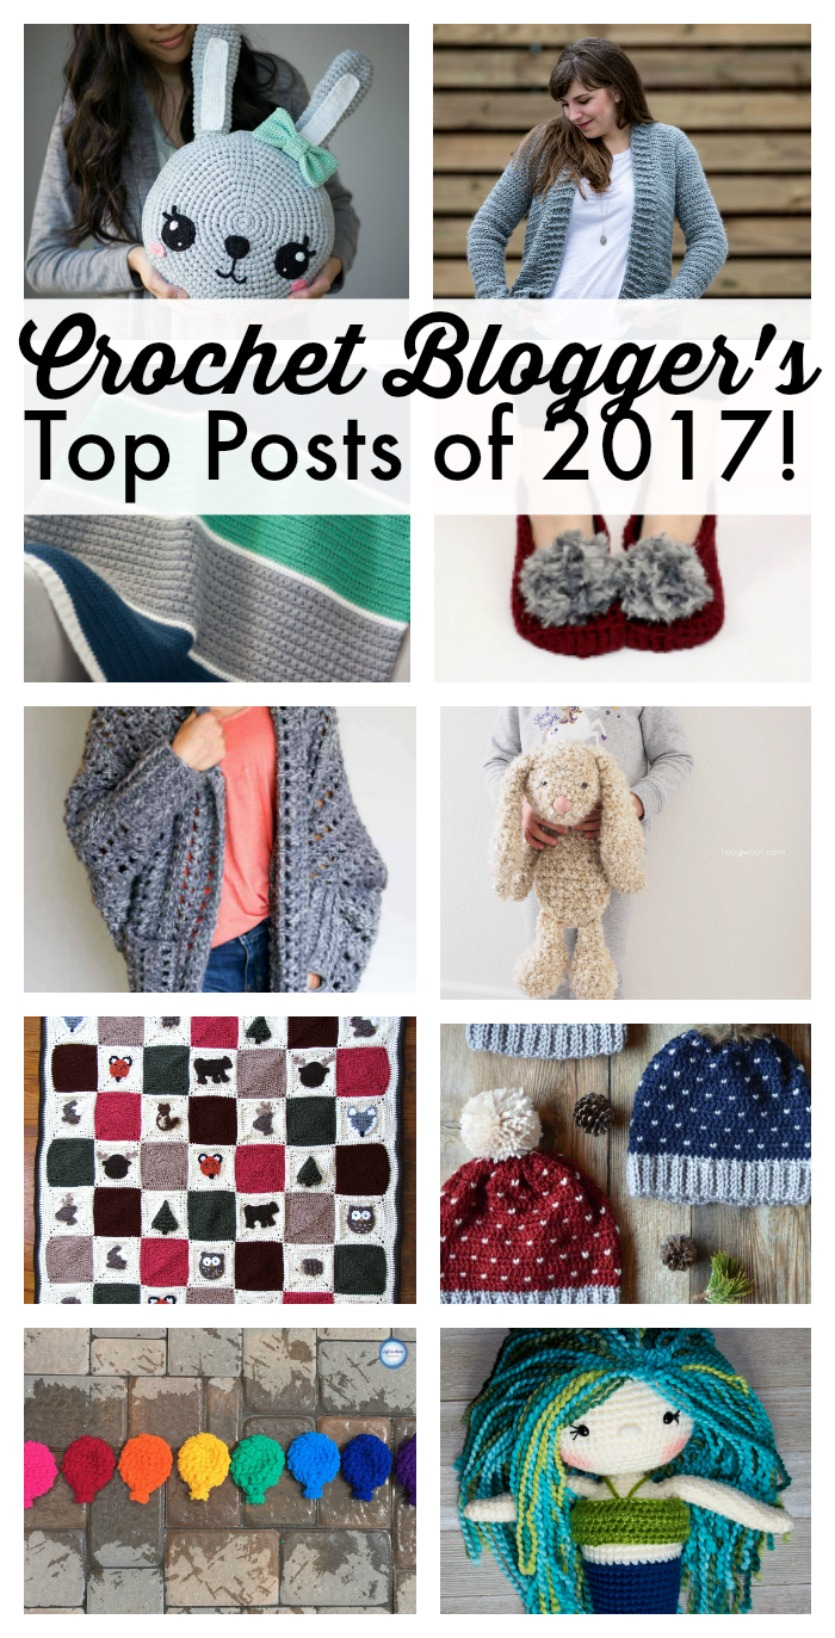 top 10 posts of 2017 from your favorite crochet bloggers